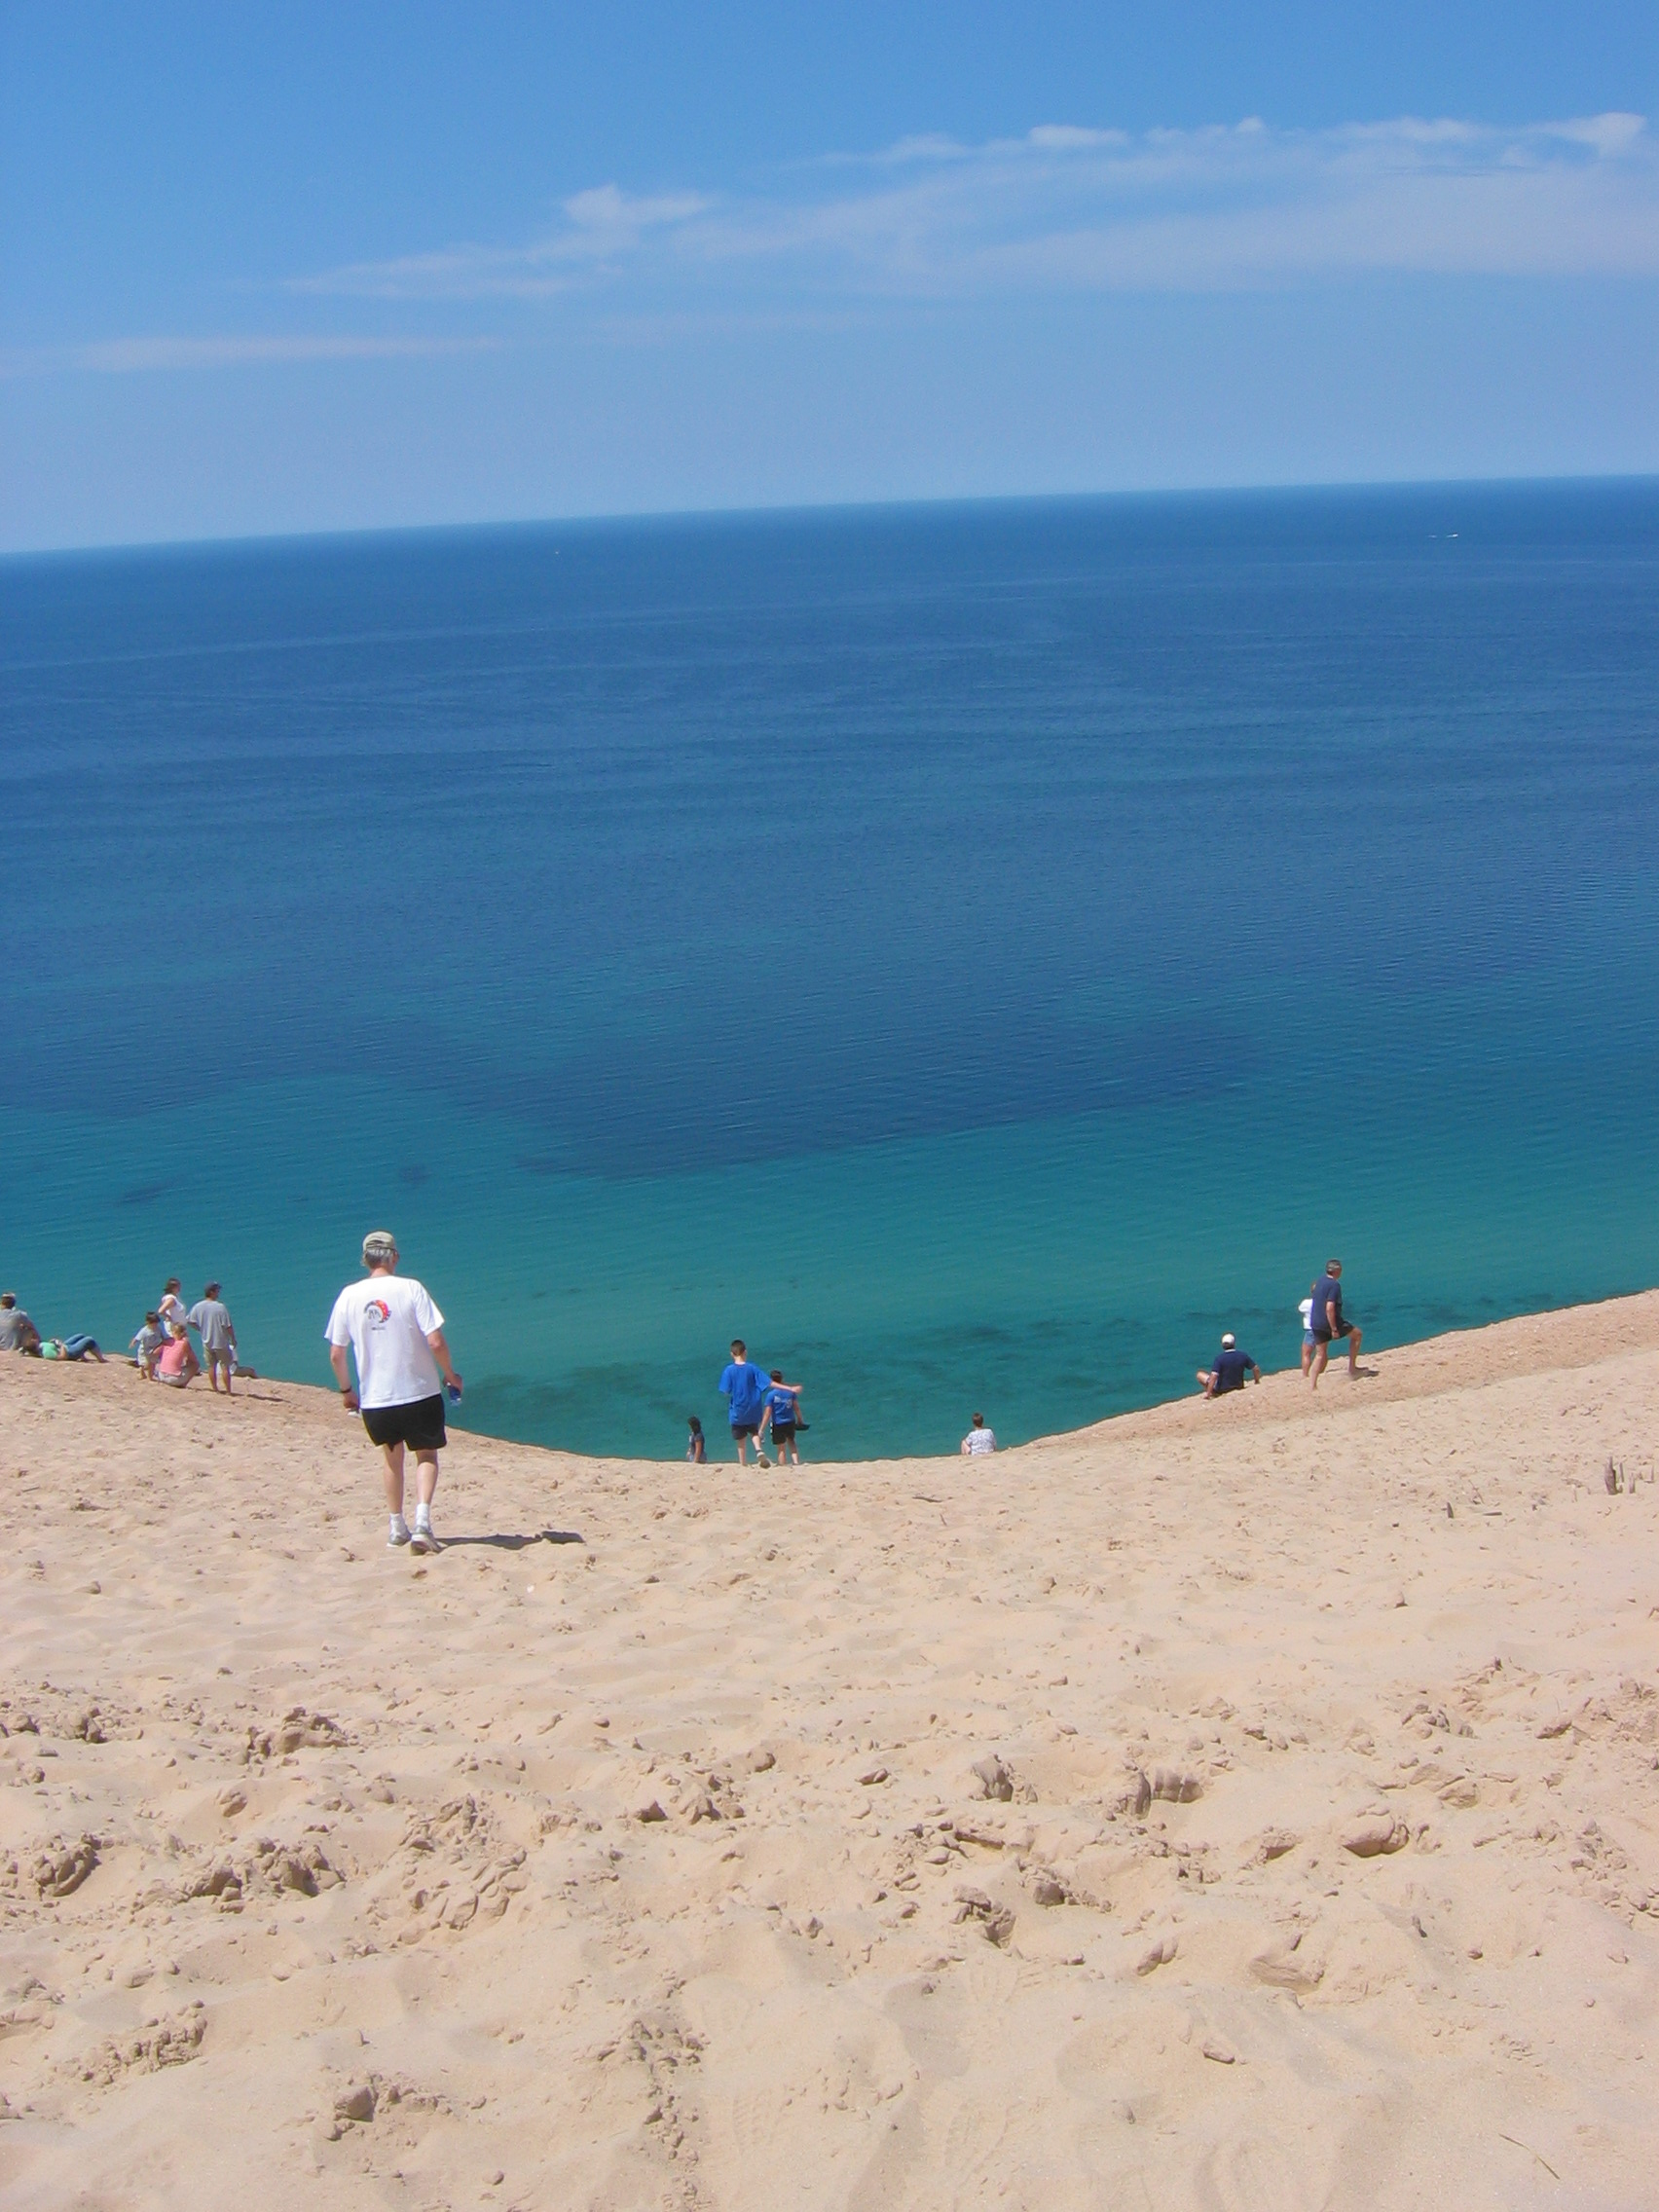 The Edge of the BIG DUNE